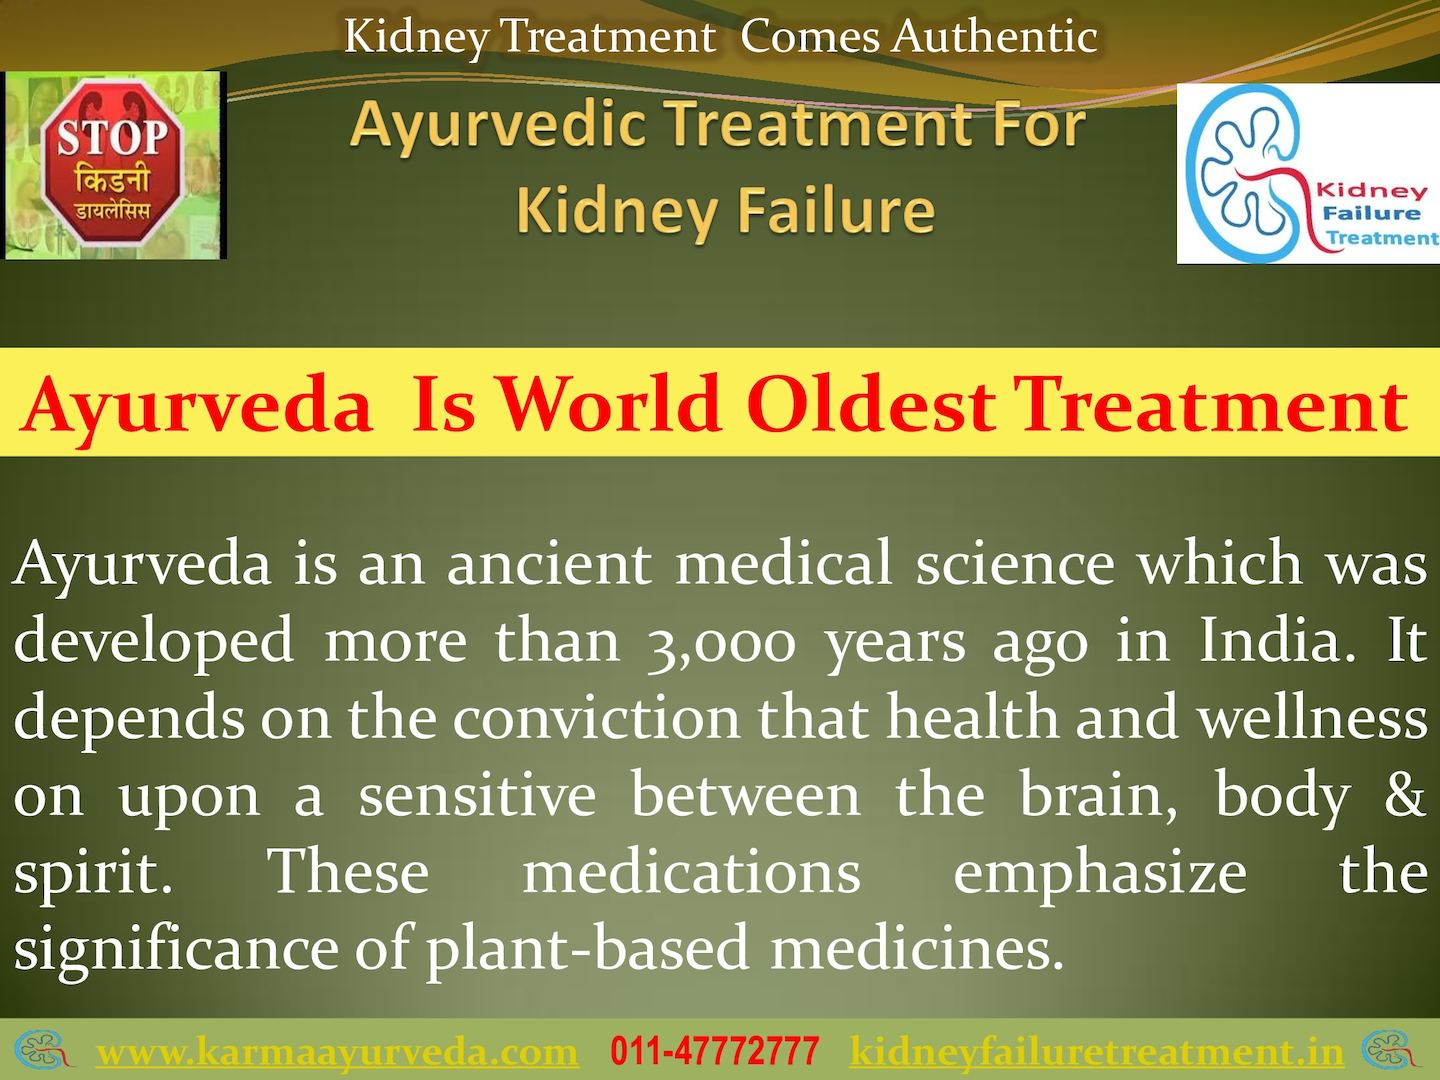 Ayurvedic Treatment For Kidney Failure Karma Ayurveda Calameo Downloader